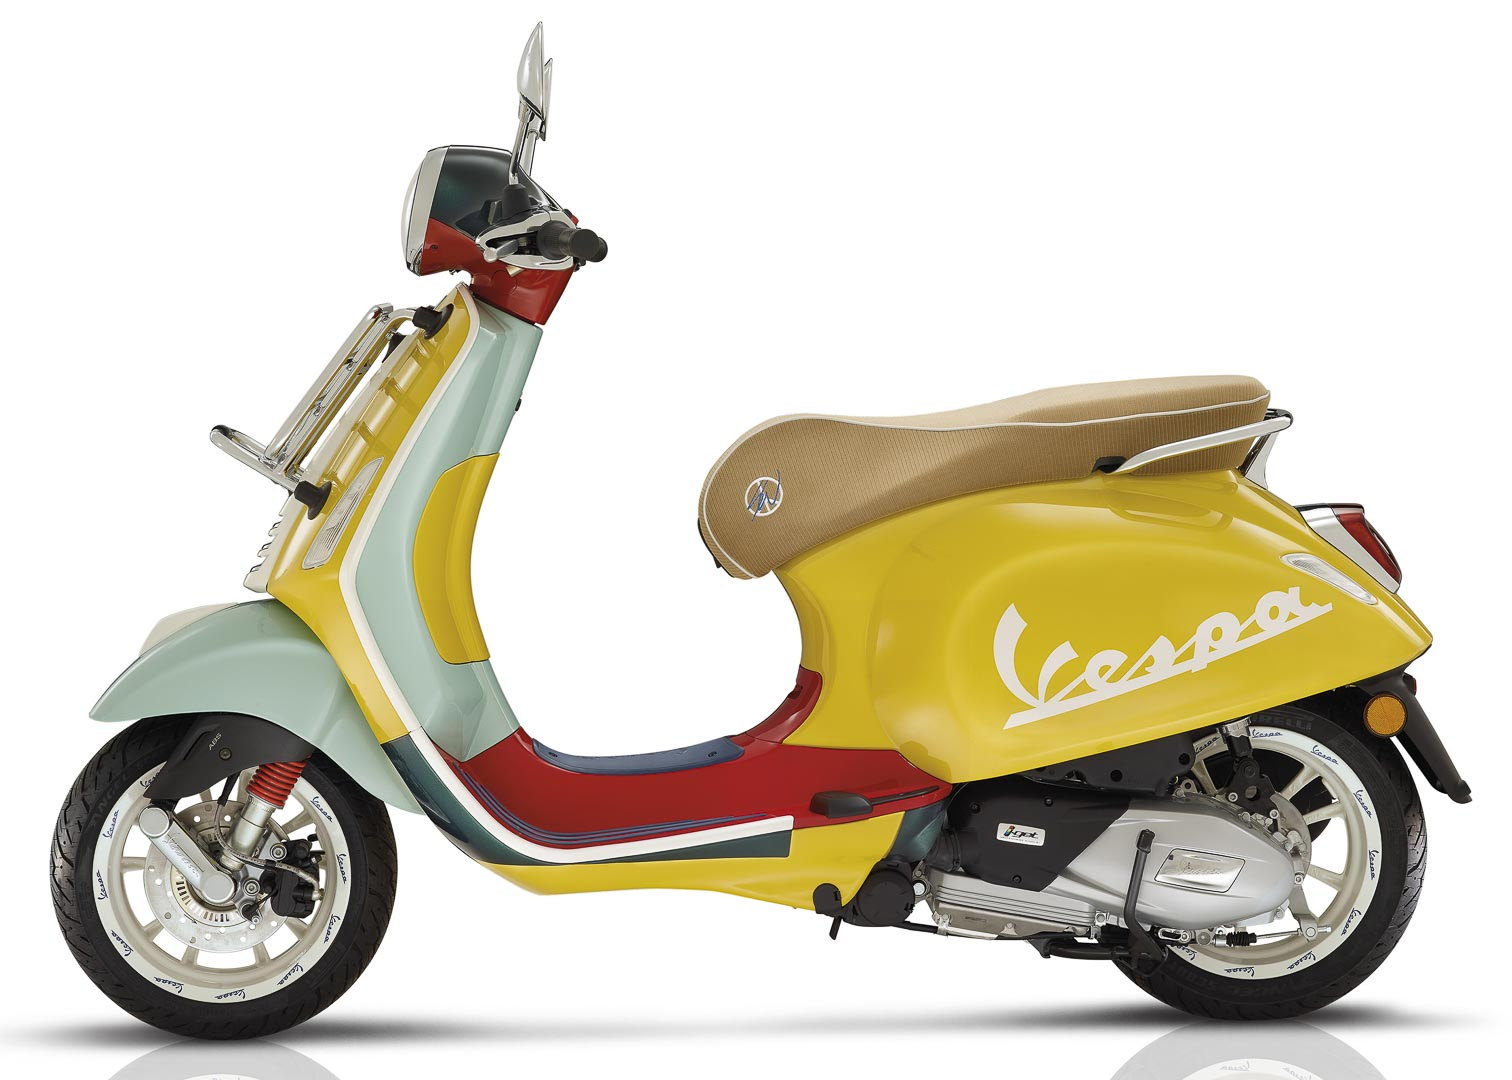 2020 Vespa Primavera Sean Wotherspoon scooter - price